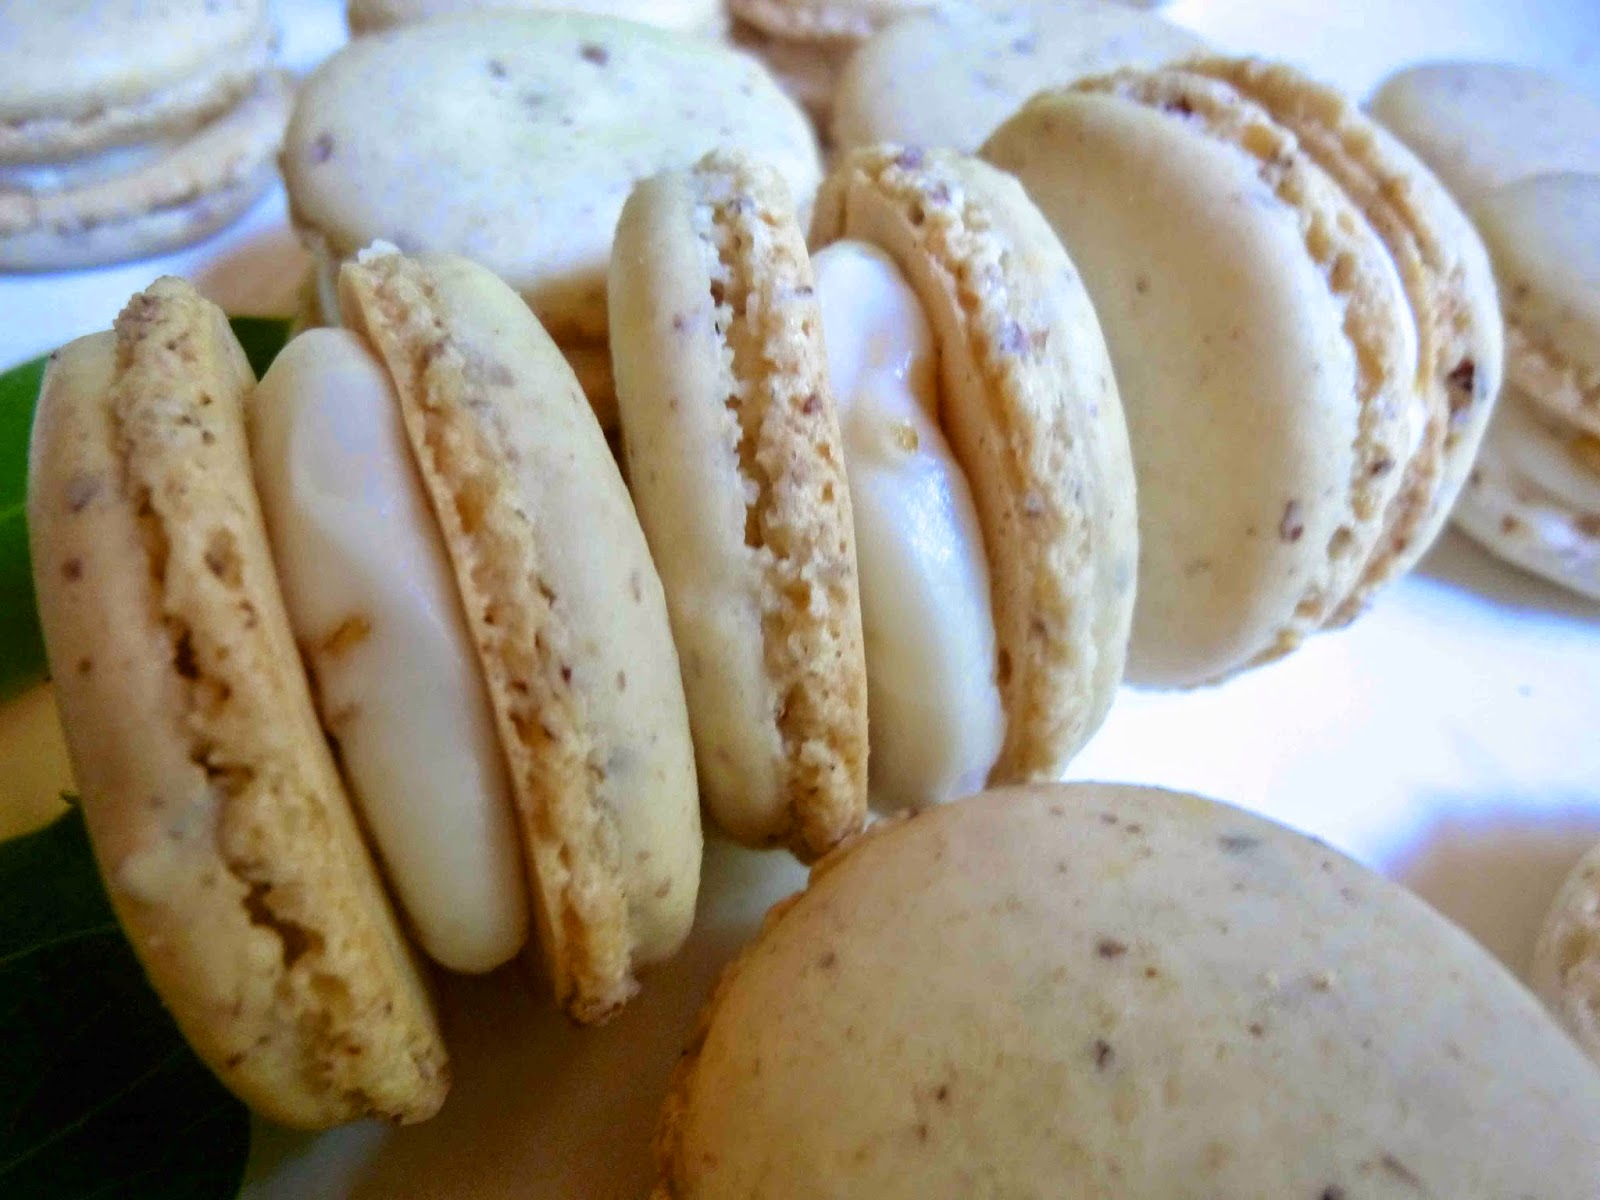 Vanilla French Macarons with Honeysuckle Buttercream Filling